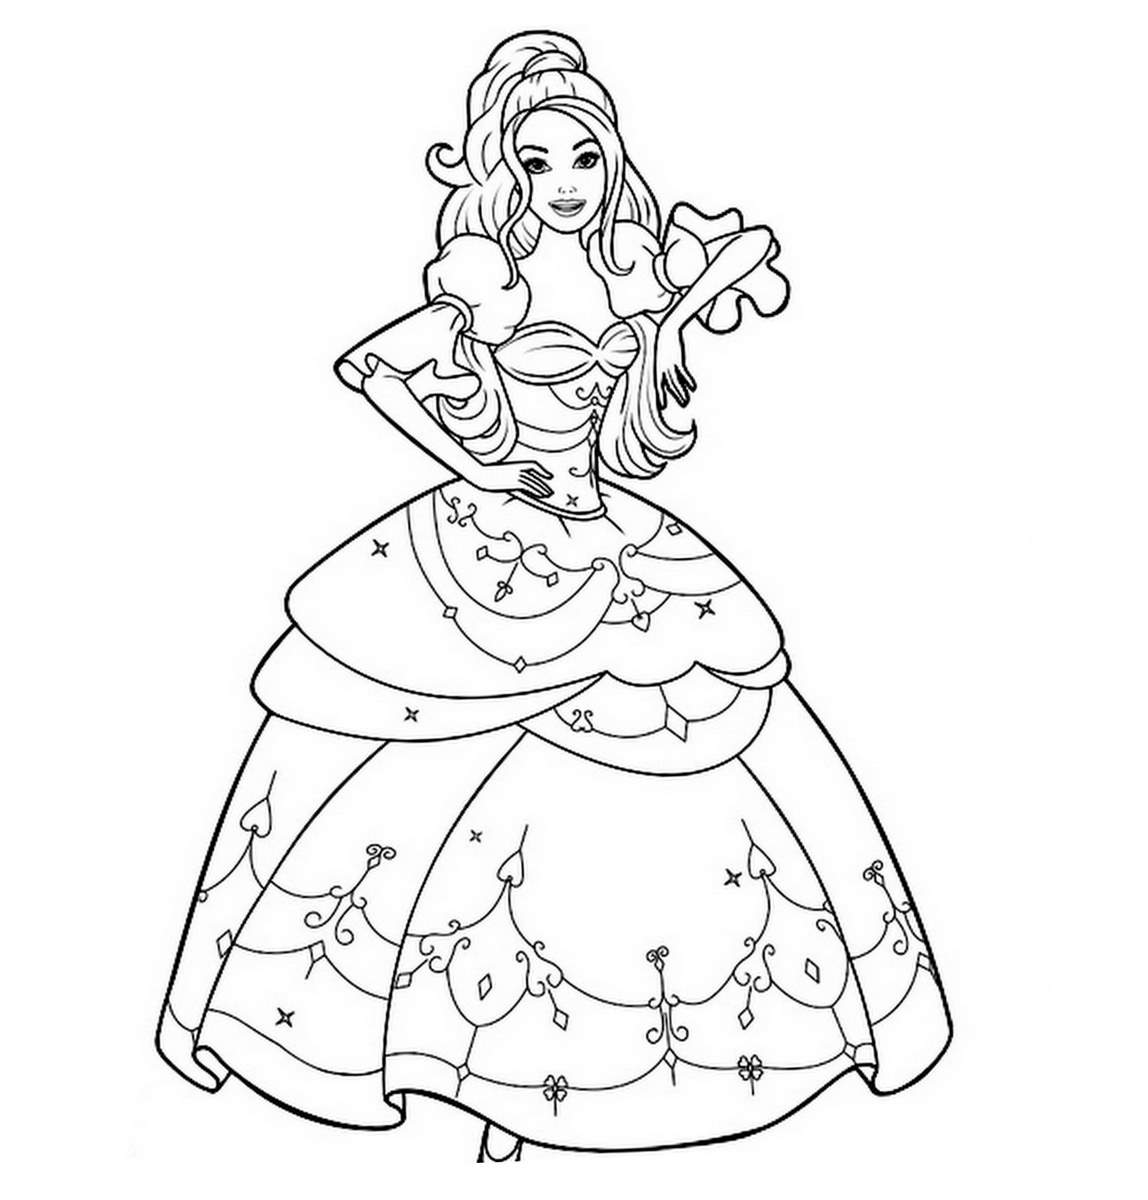 Coloriage Robe Princesse Imprimer.New Coloriage Robe De Princesse Inspirant Coloriage Robe De